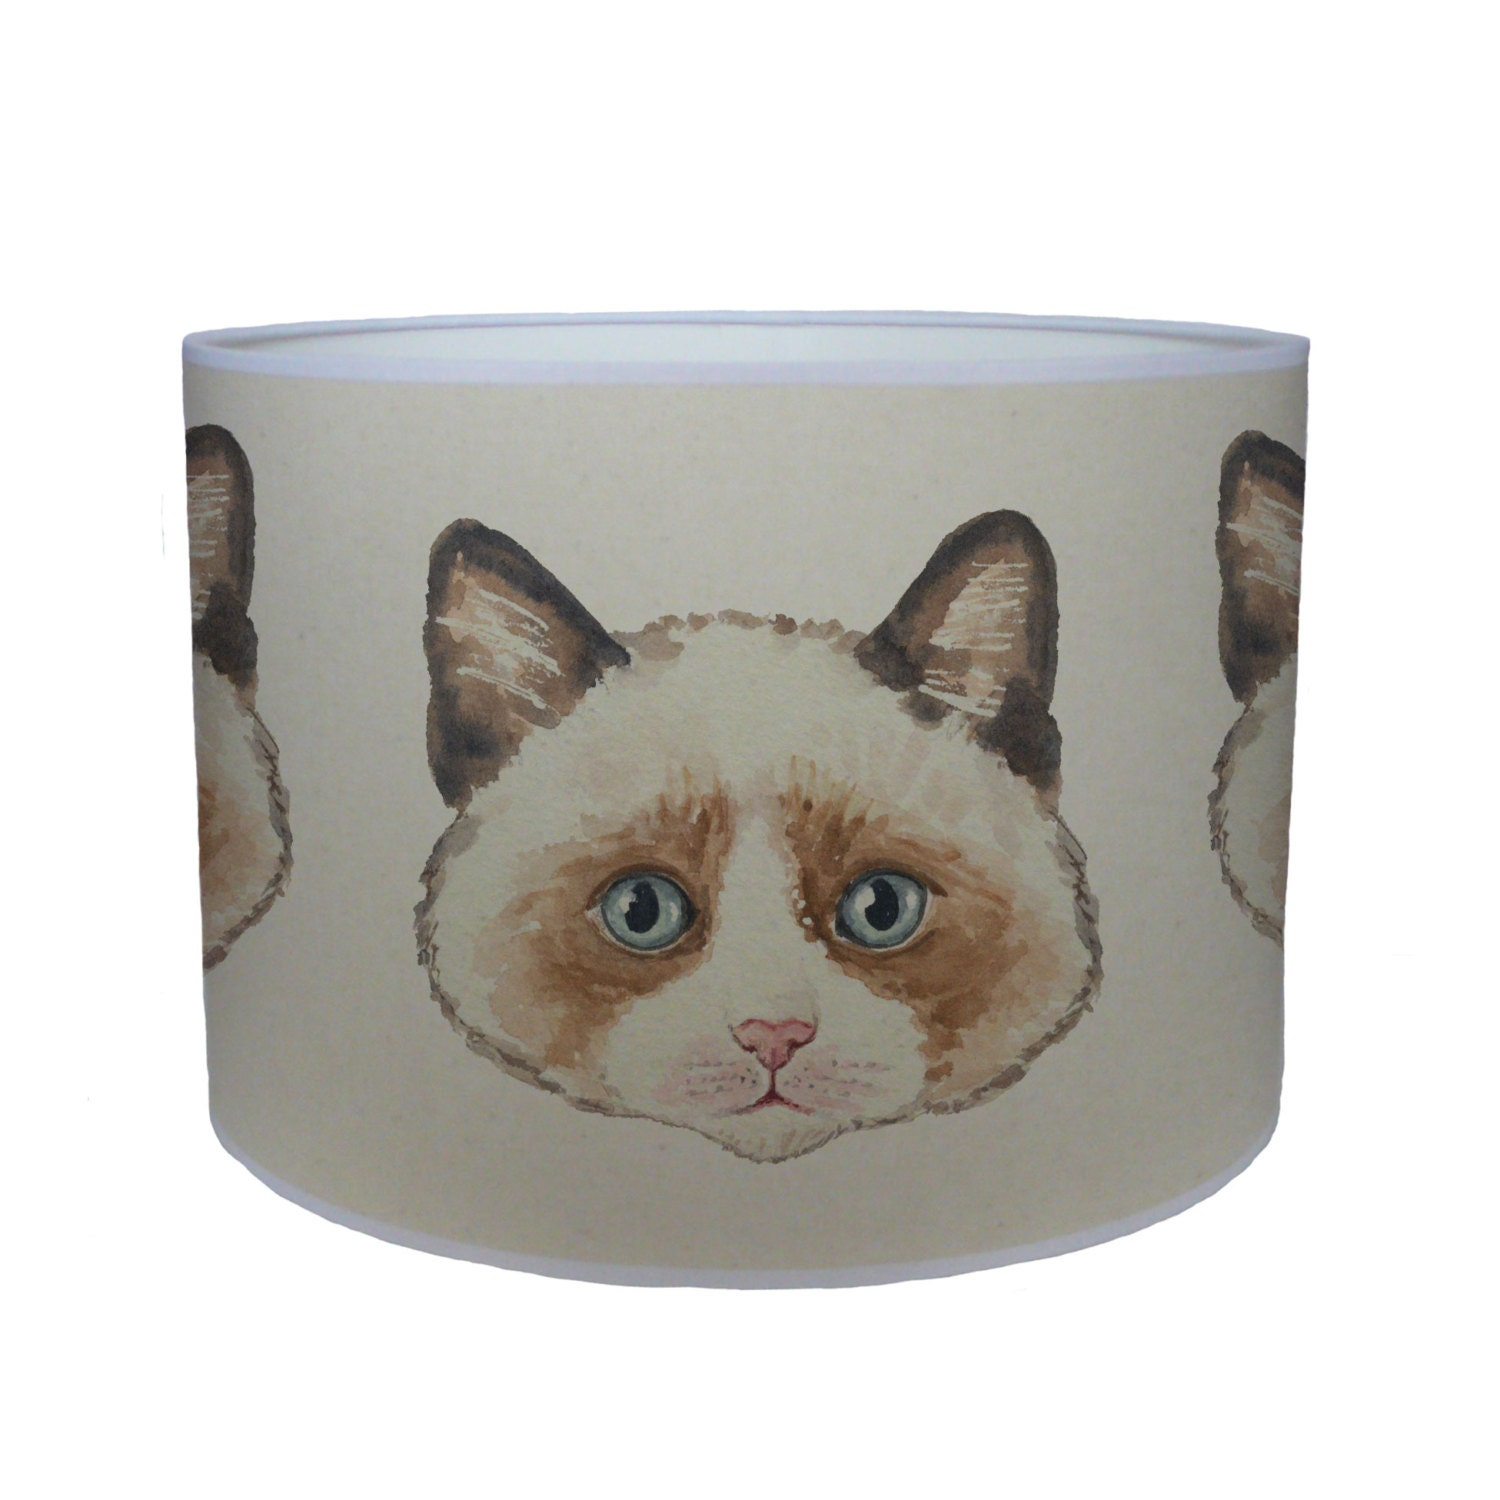 Brown cat shade lamp shade ceiling shade drum lampshade lighting handmade home